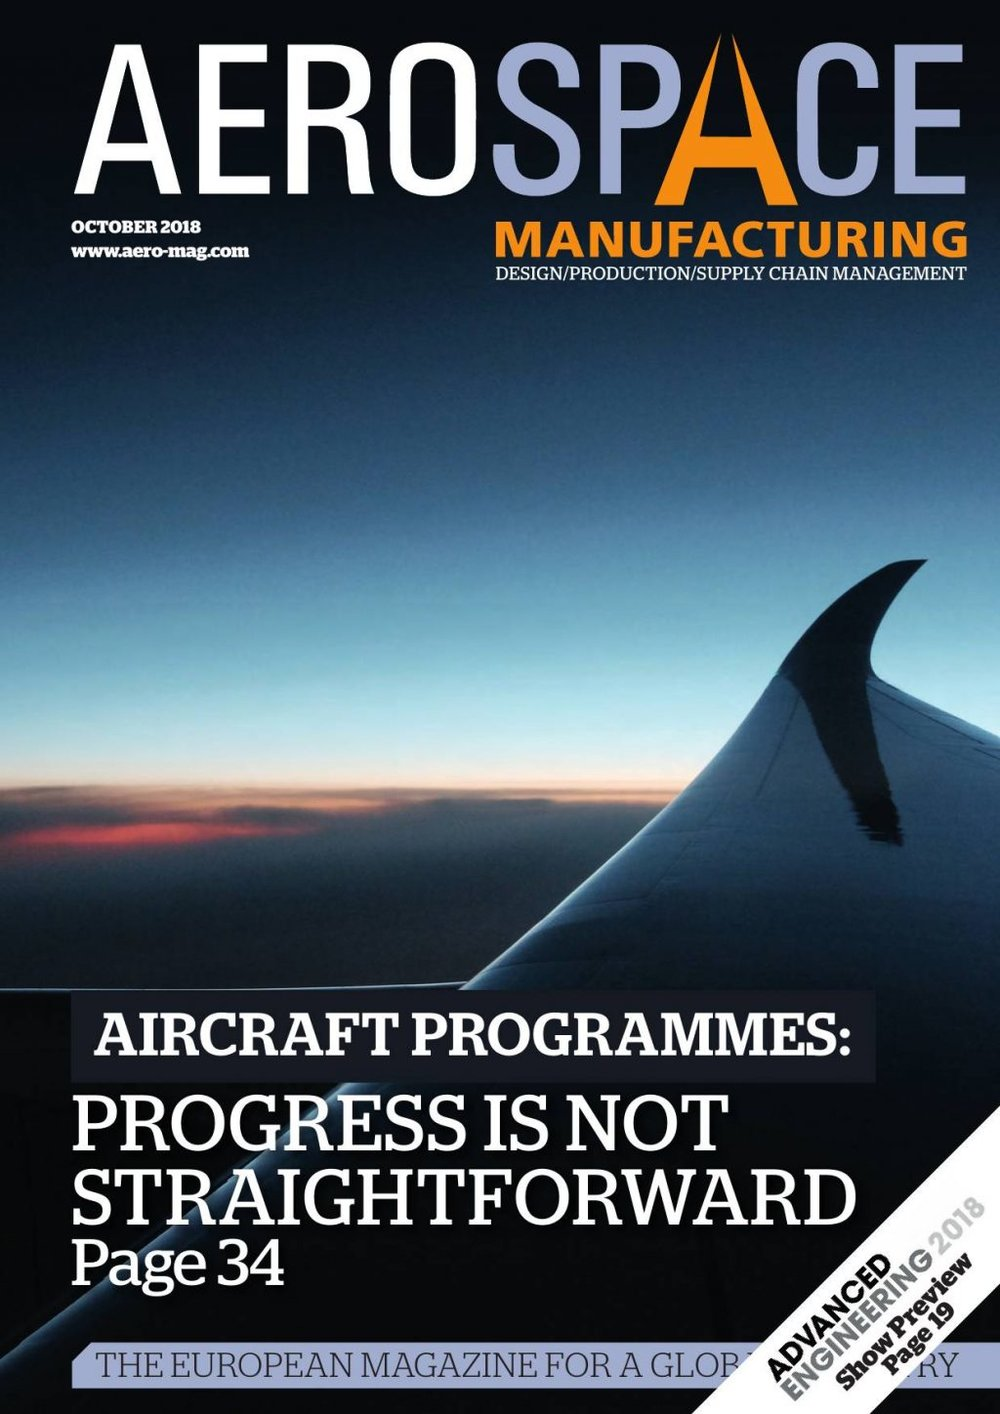 Aerospace Manufacturing magazine(aero-mag.com) - Since its launch at the 2006 Farnborough Airshow, Aerospace Manufacturing (AM) has grown to become the leading B2B publication that focuses on the design, production and supply chain elements of the civil and defence aerospace sectors. AM is published 10 times each year and distributed to over 16,000 decision-making industry professionals within Europe.Learn more